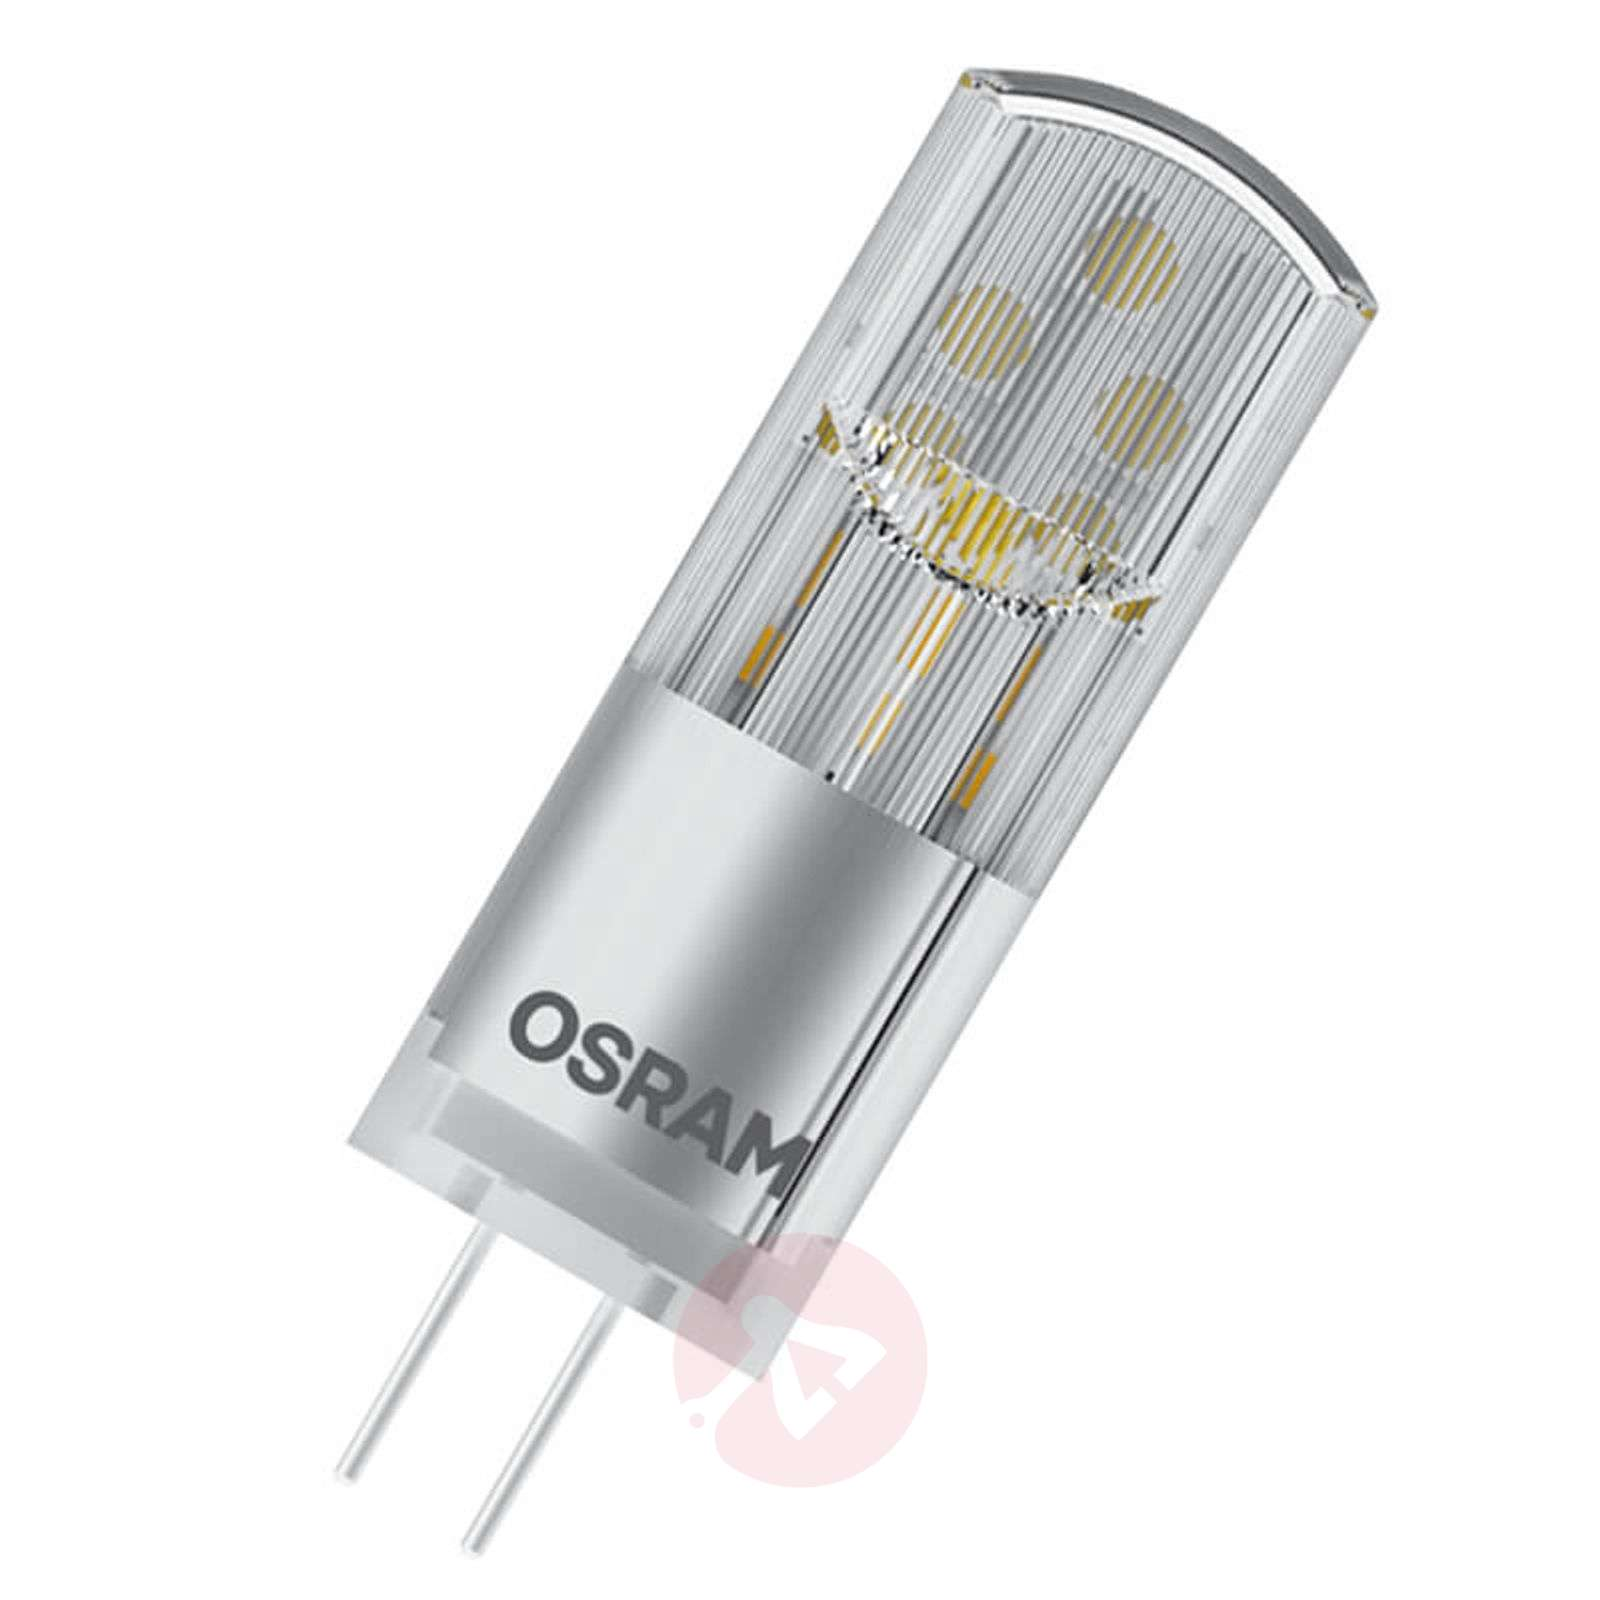 Ampoule à broches LED G4 2,4W, blanc chaud, 300 lm-7262065-01